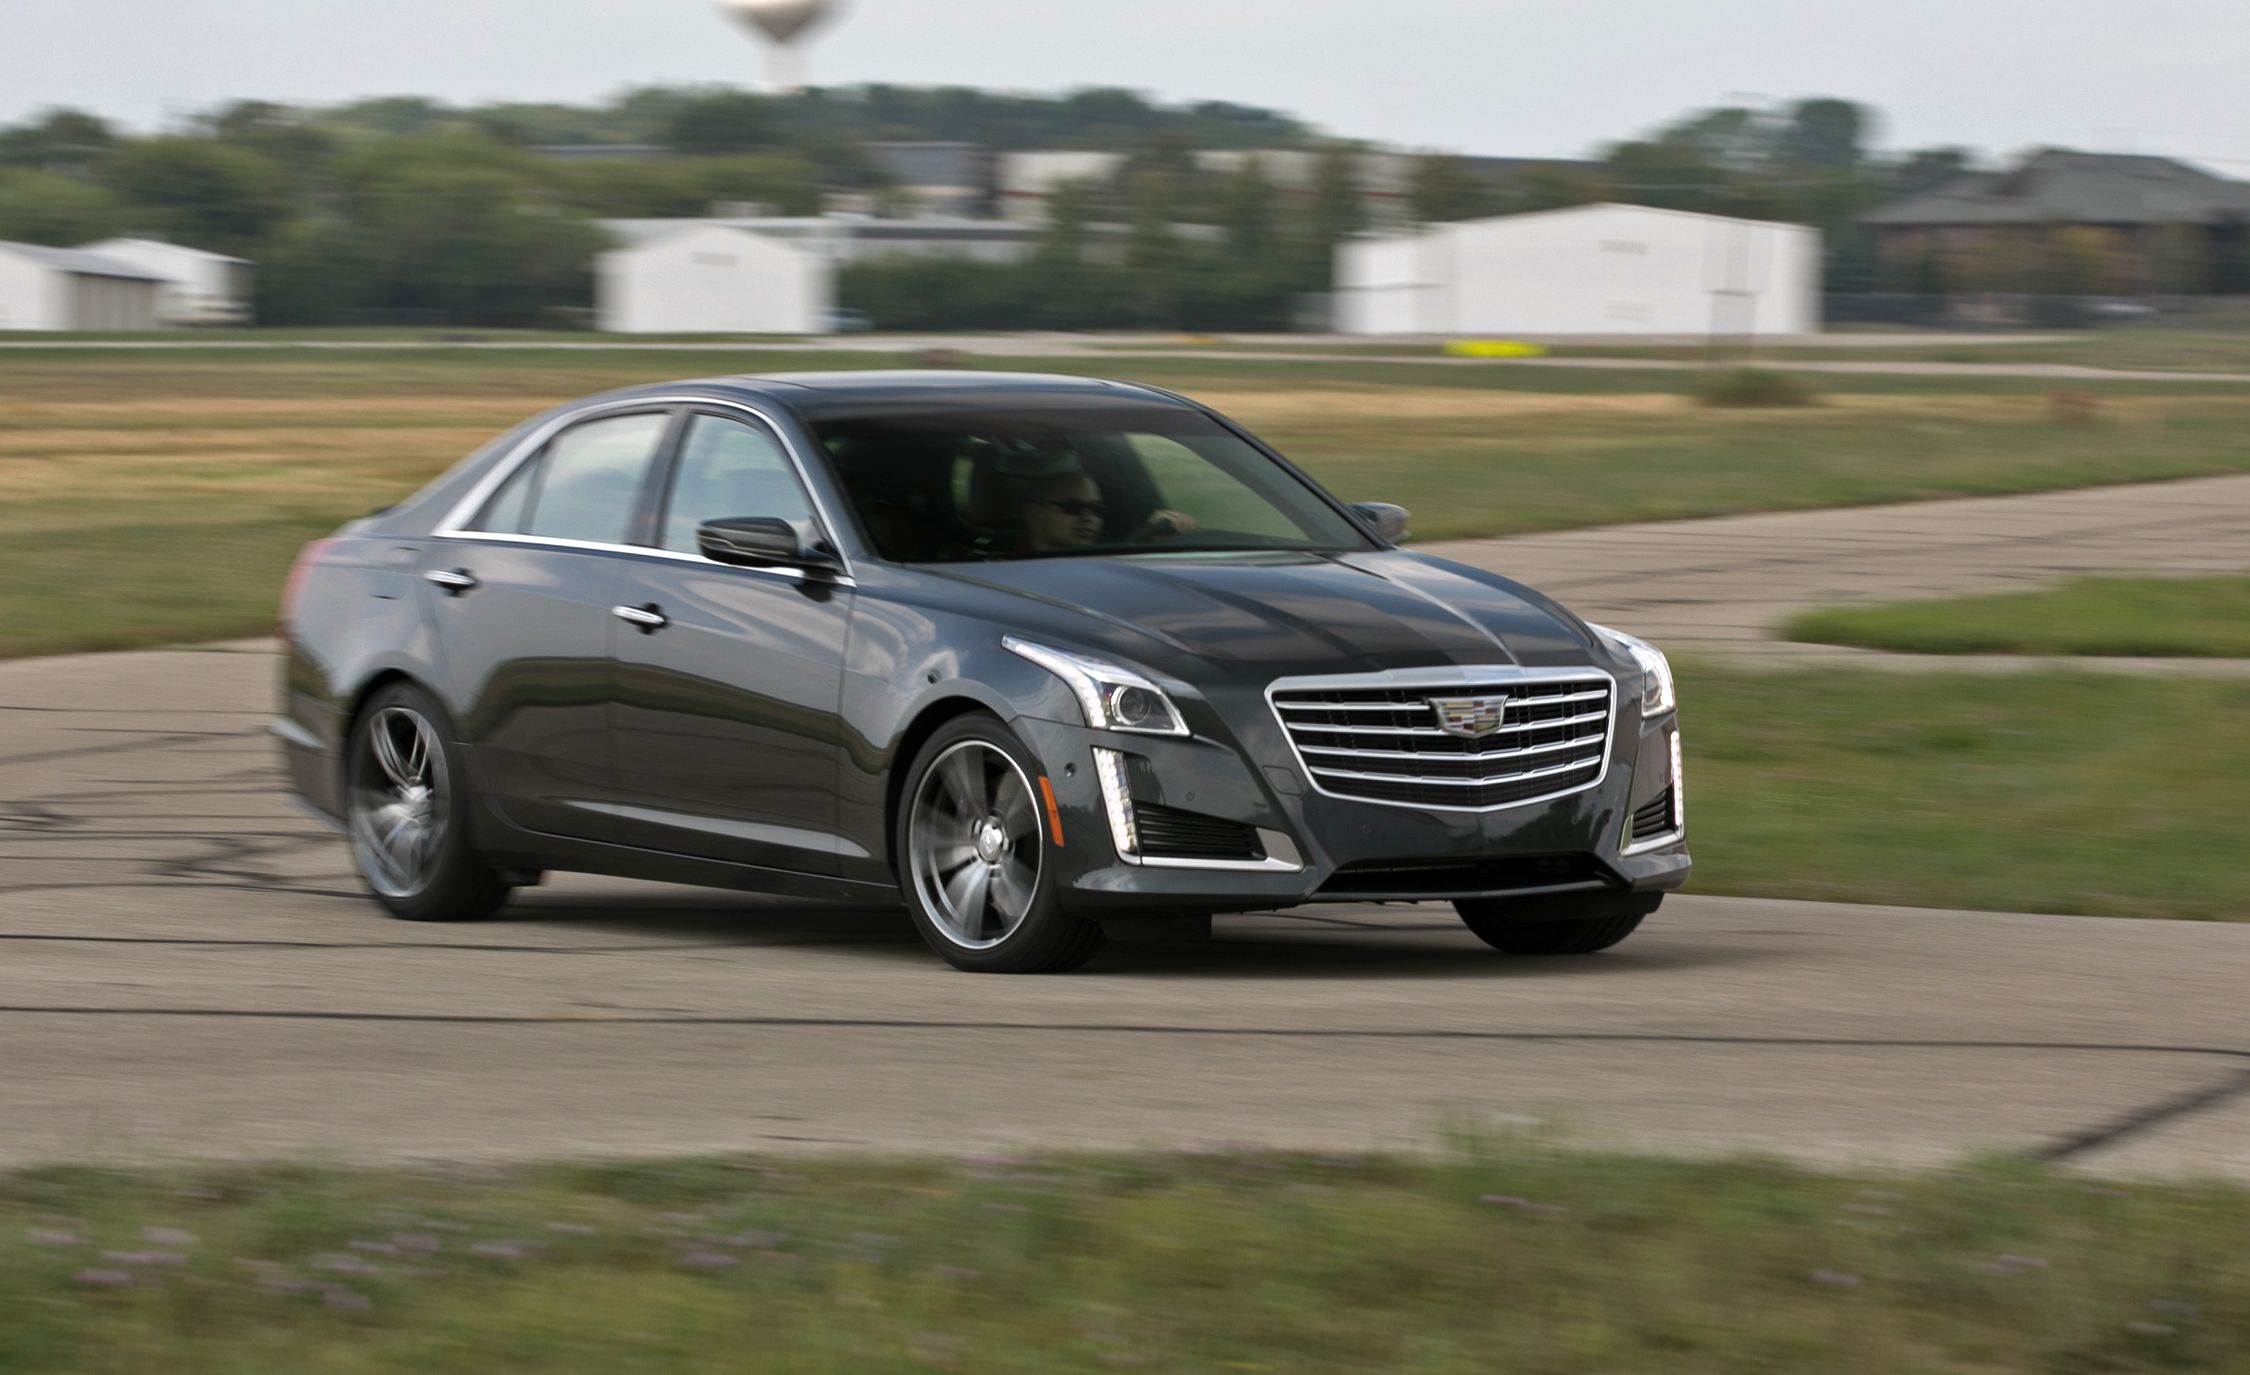 2017 Cadillac CTS | In-Depth Model Review | Car and Driver